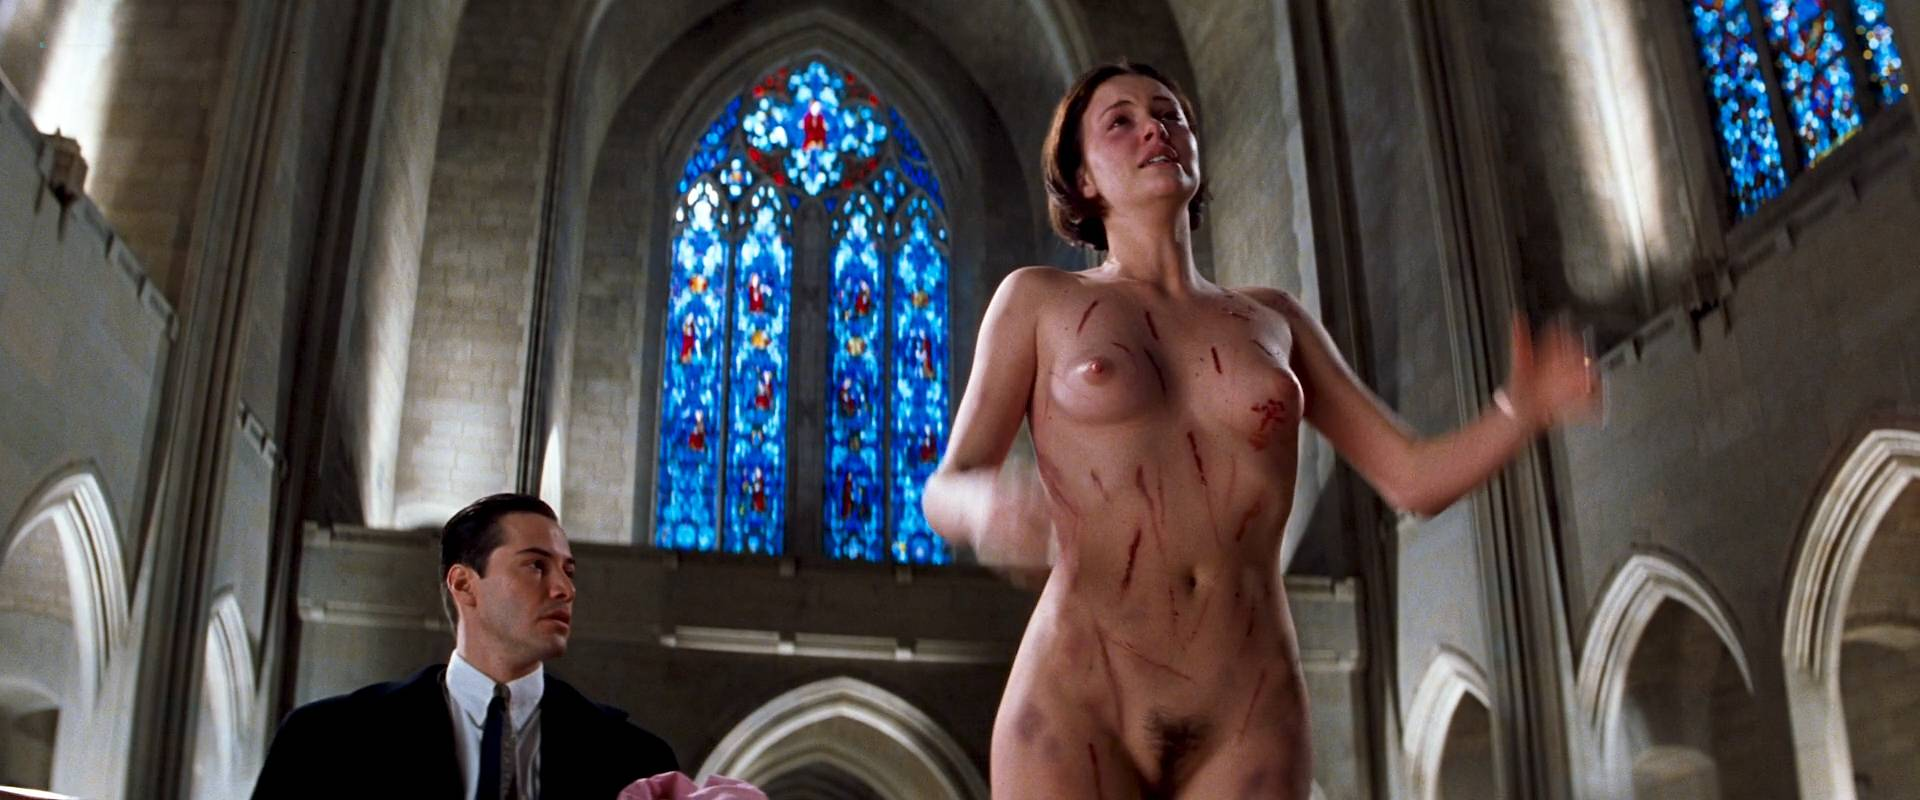 Charlize Theron Nude Full Frontal Connie Nielsen Nude Bush -4876